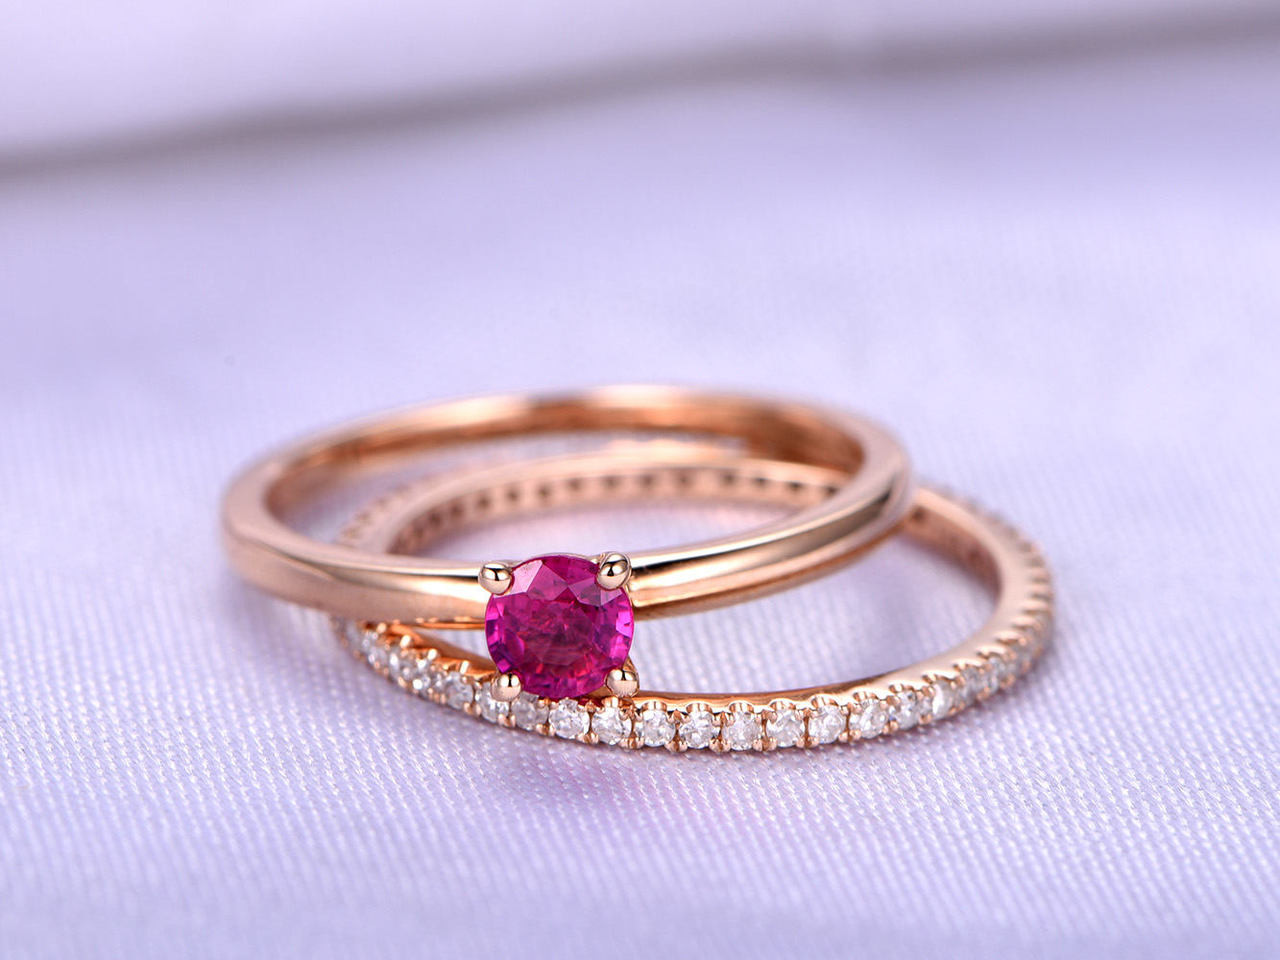 Ruby Ring RingWedding Set4mm Round Cut Natural Engagement